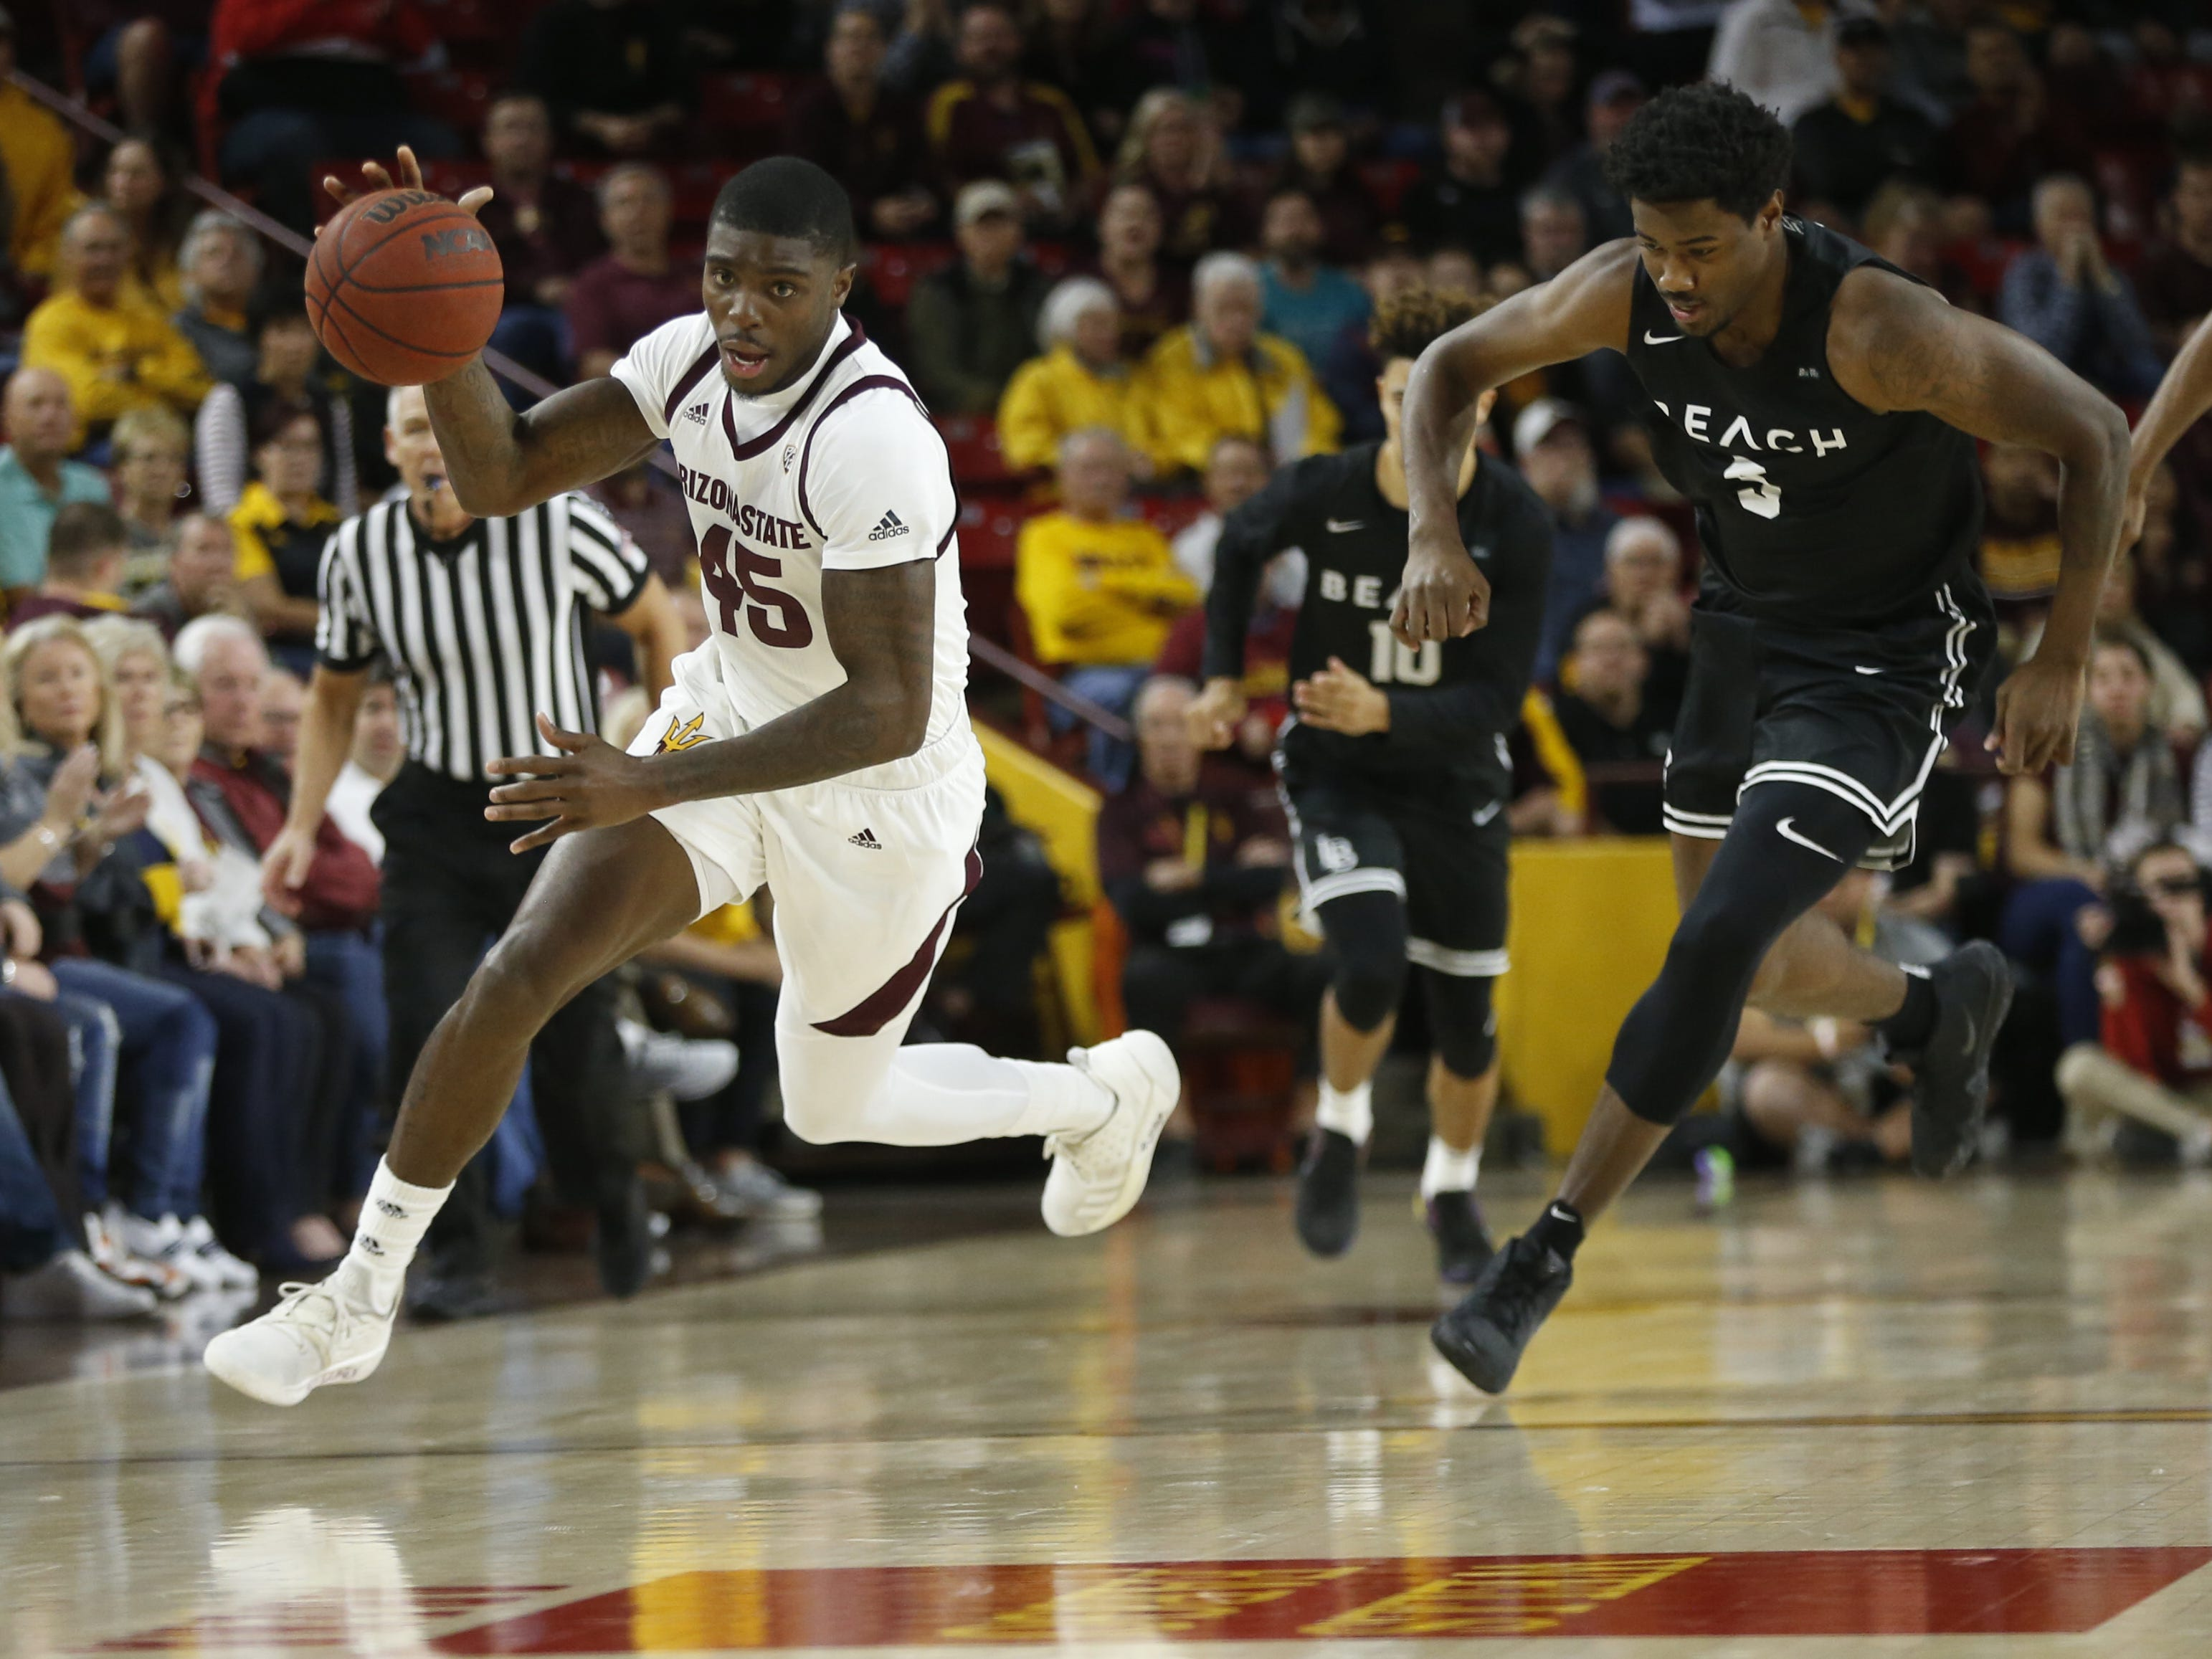 Arizona State's Zylan Cheatham (45) runs past Long Beach State's Mason Riggins (5) after a steal during the first half at Wells Fargo Arena in Tempe, Ariz. on November 12, 2018.